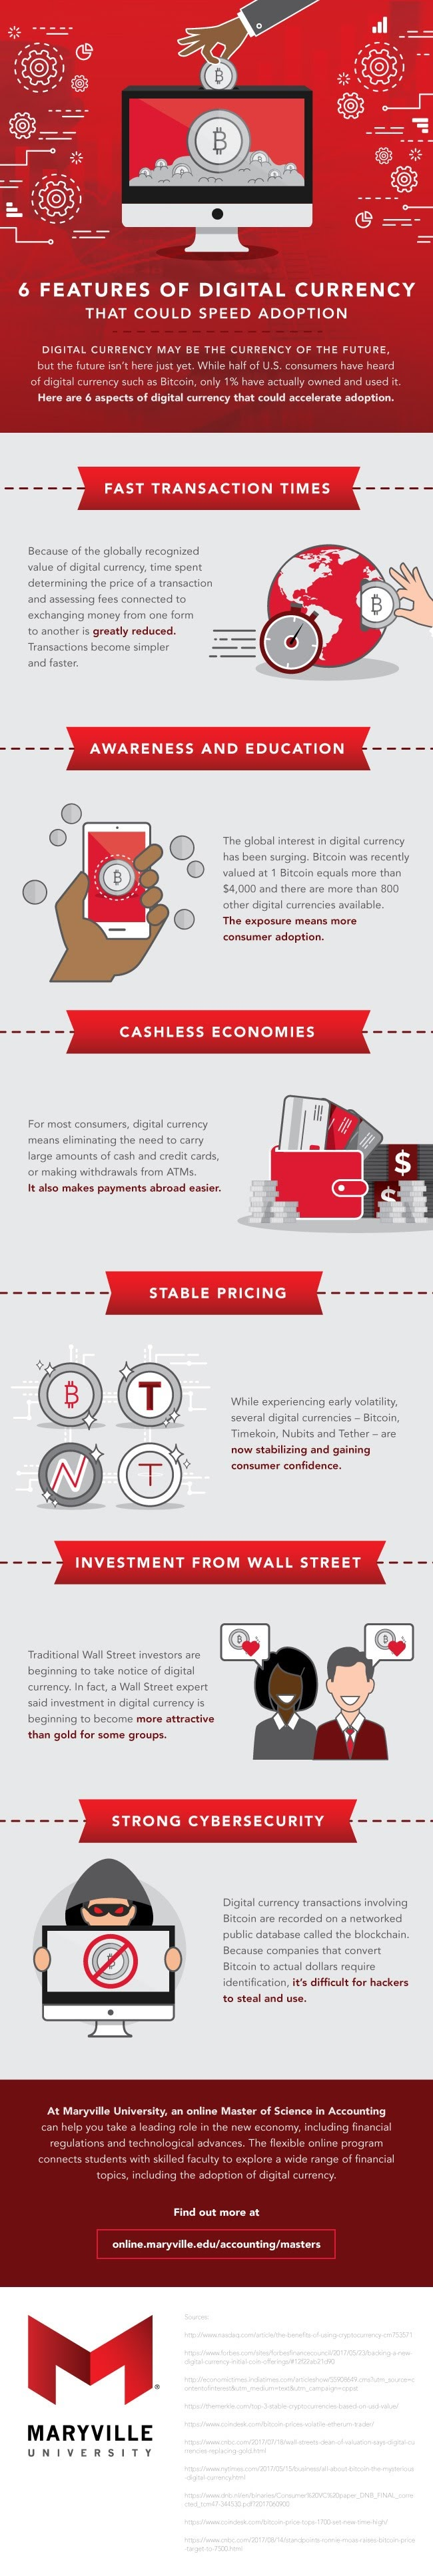 6 Features of Digital Currency That Could Speed Adoption #infographic